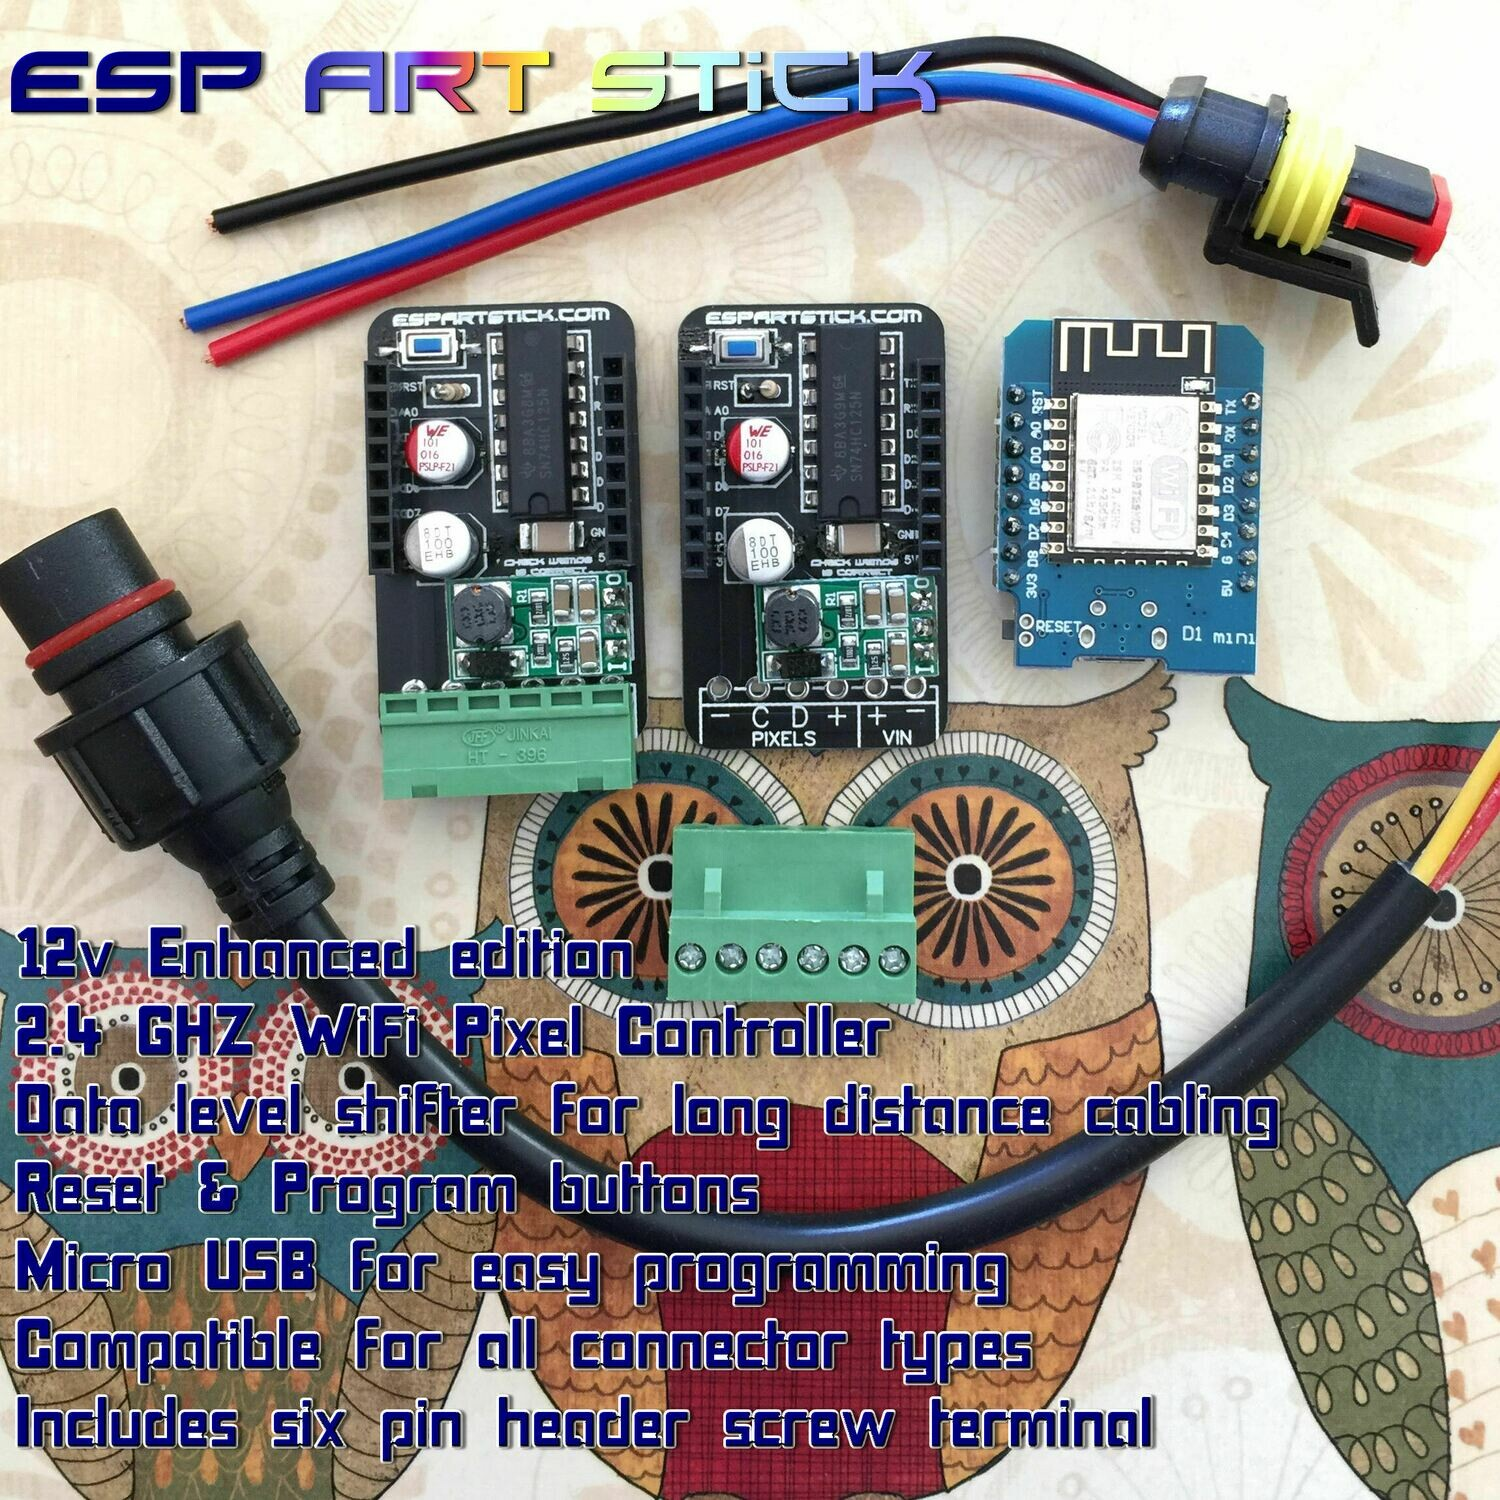 ESP Art Stick 12v enhanced complete